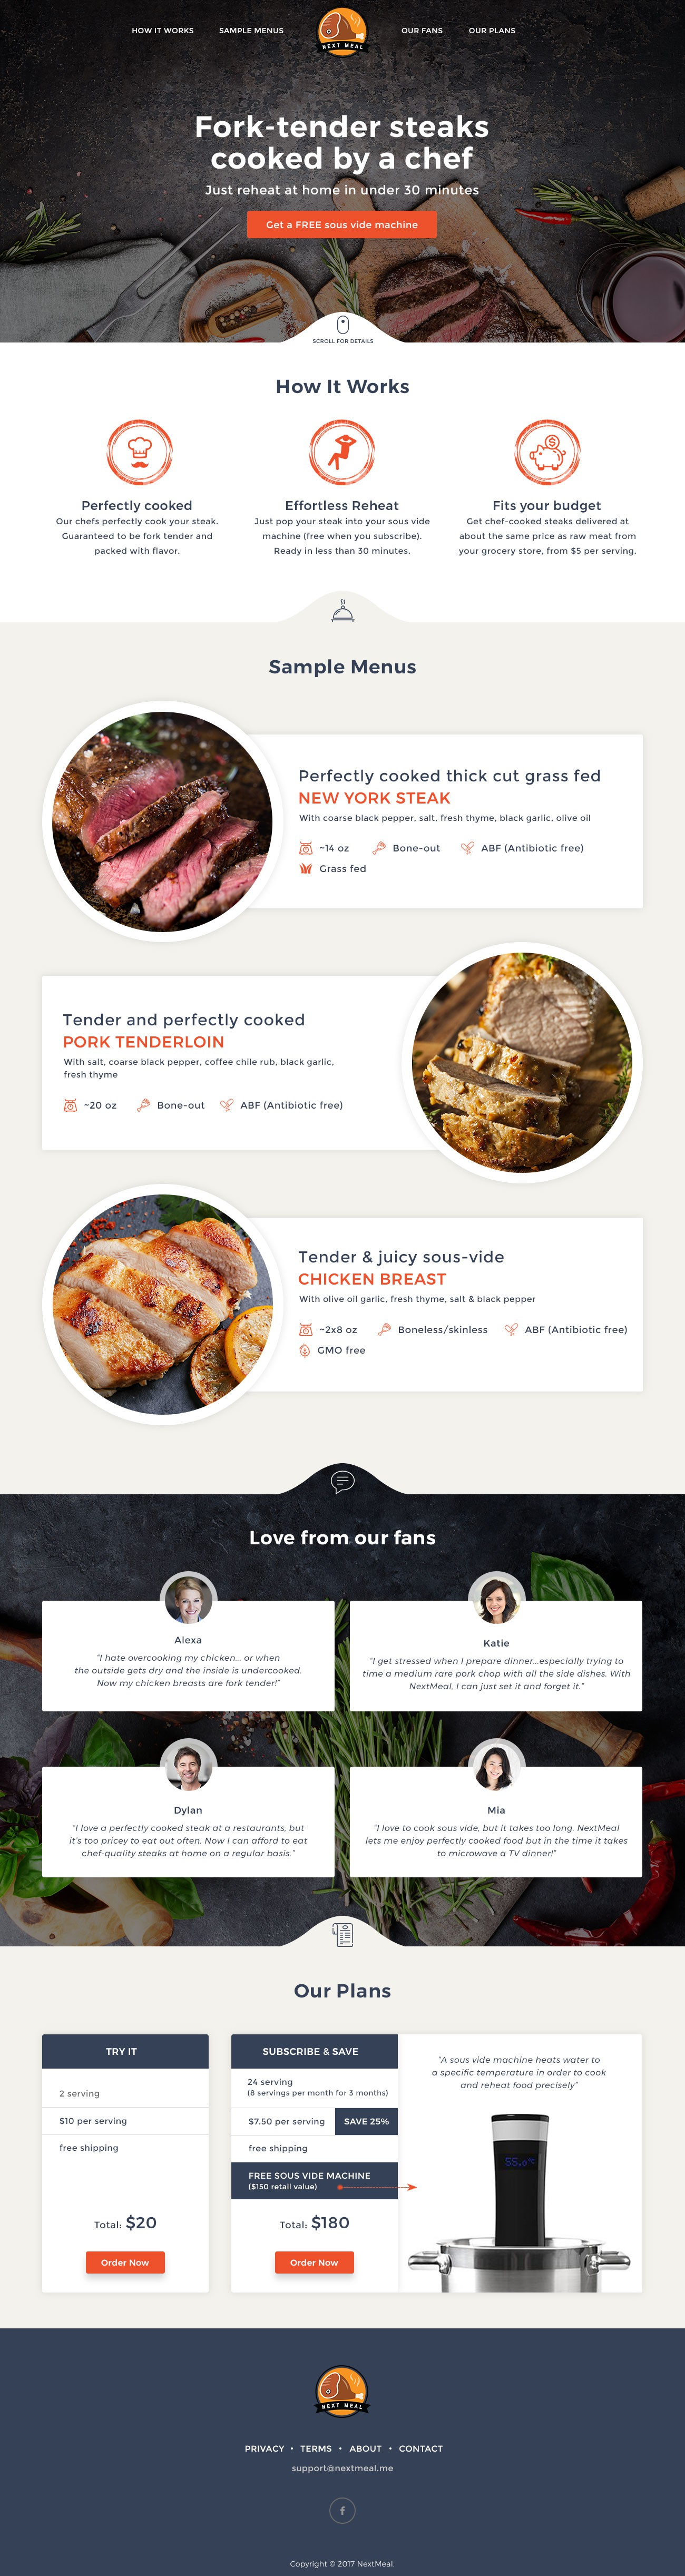 Design a compelling landing page for a new food delivery service like Blue Apron.